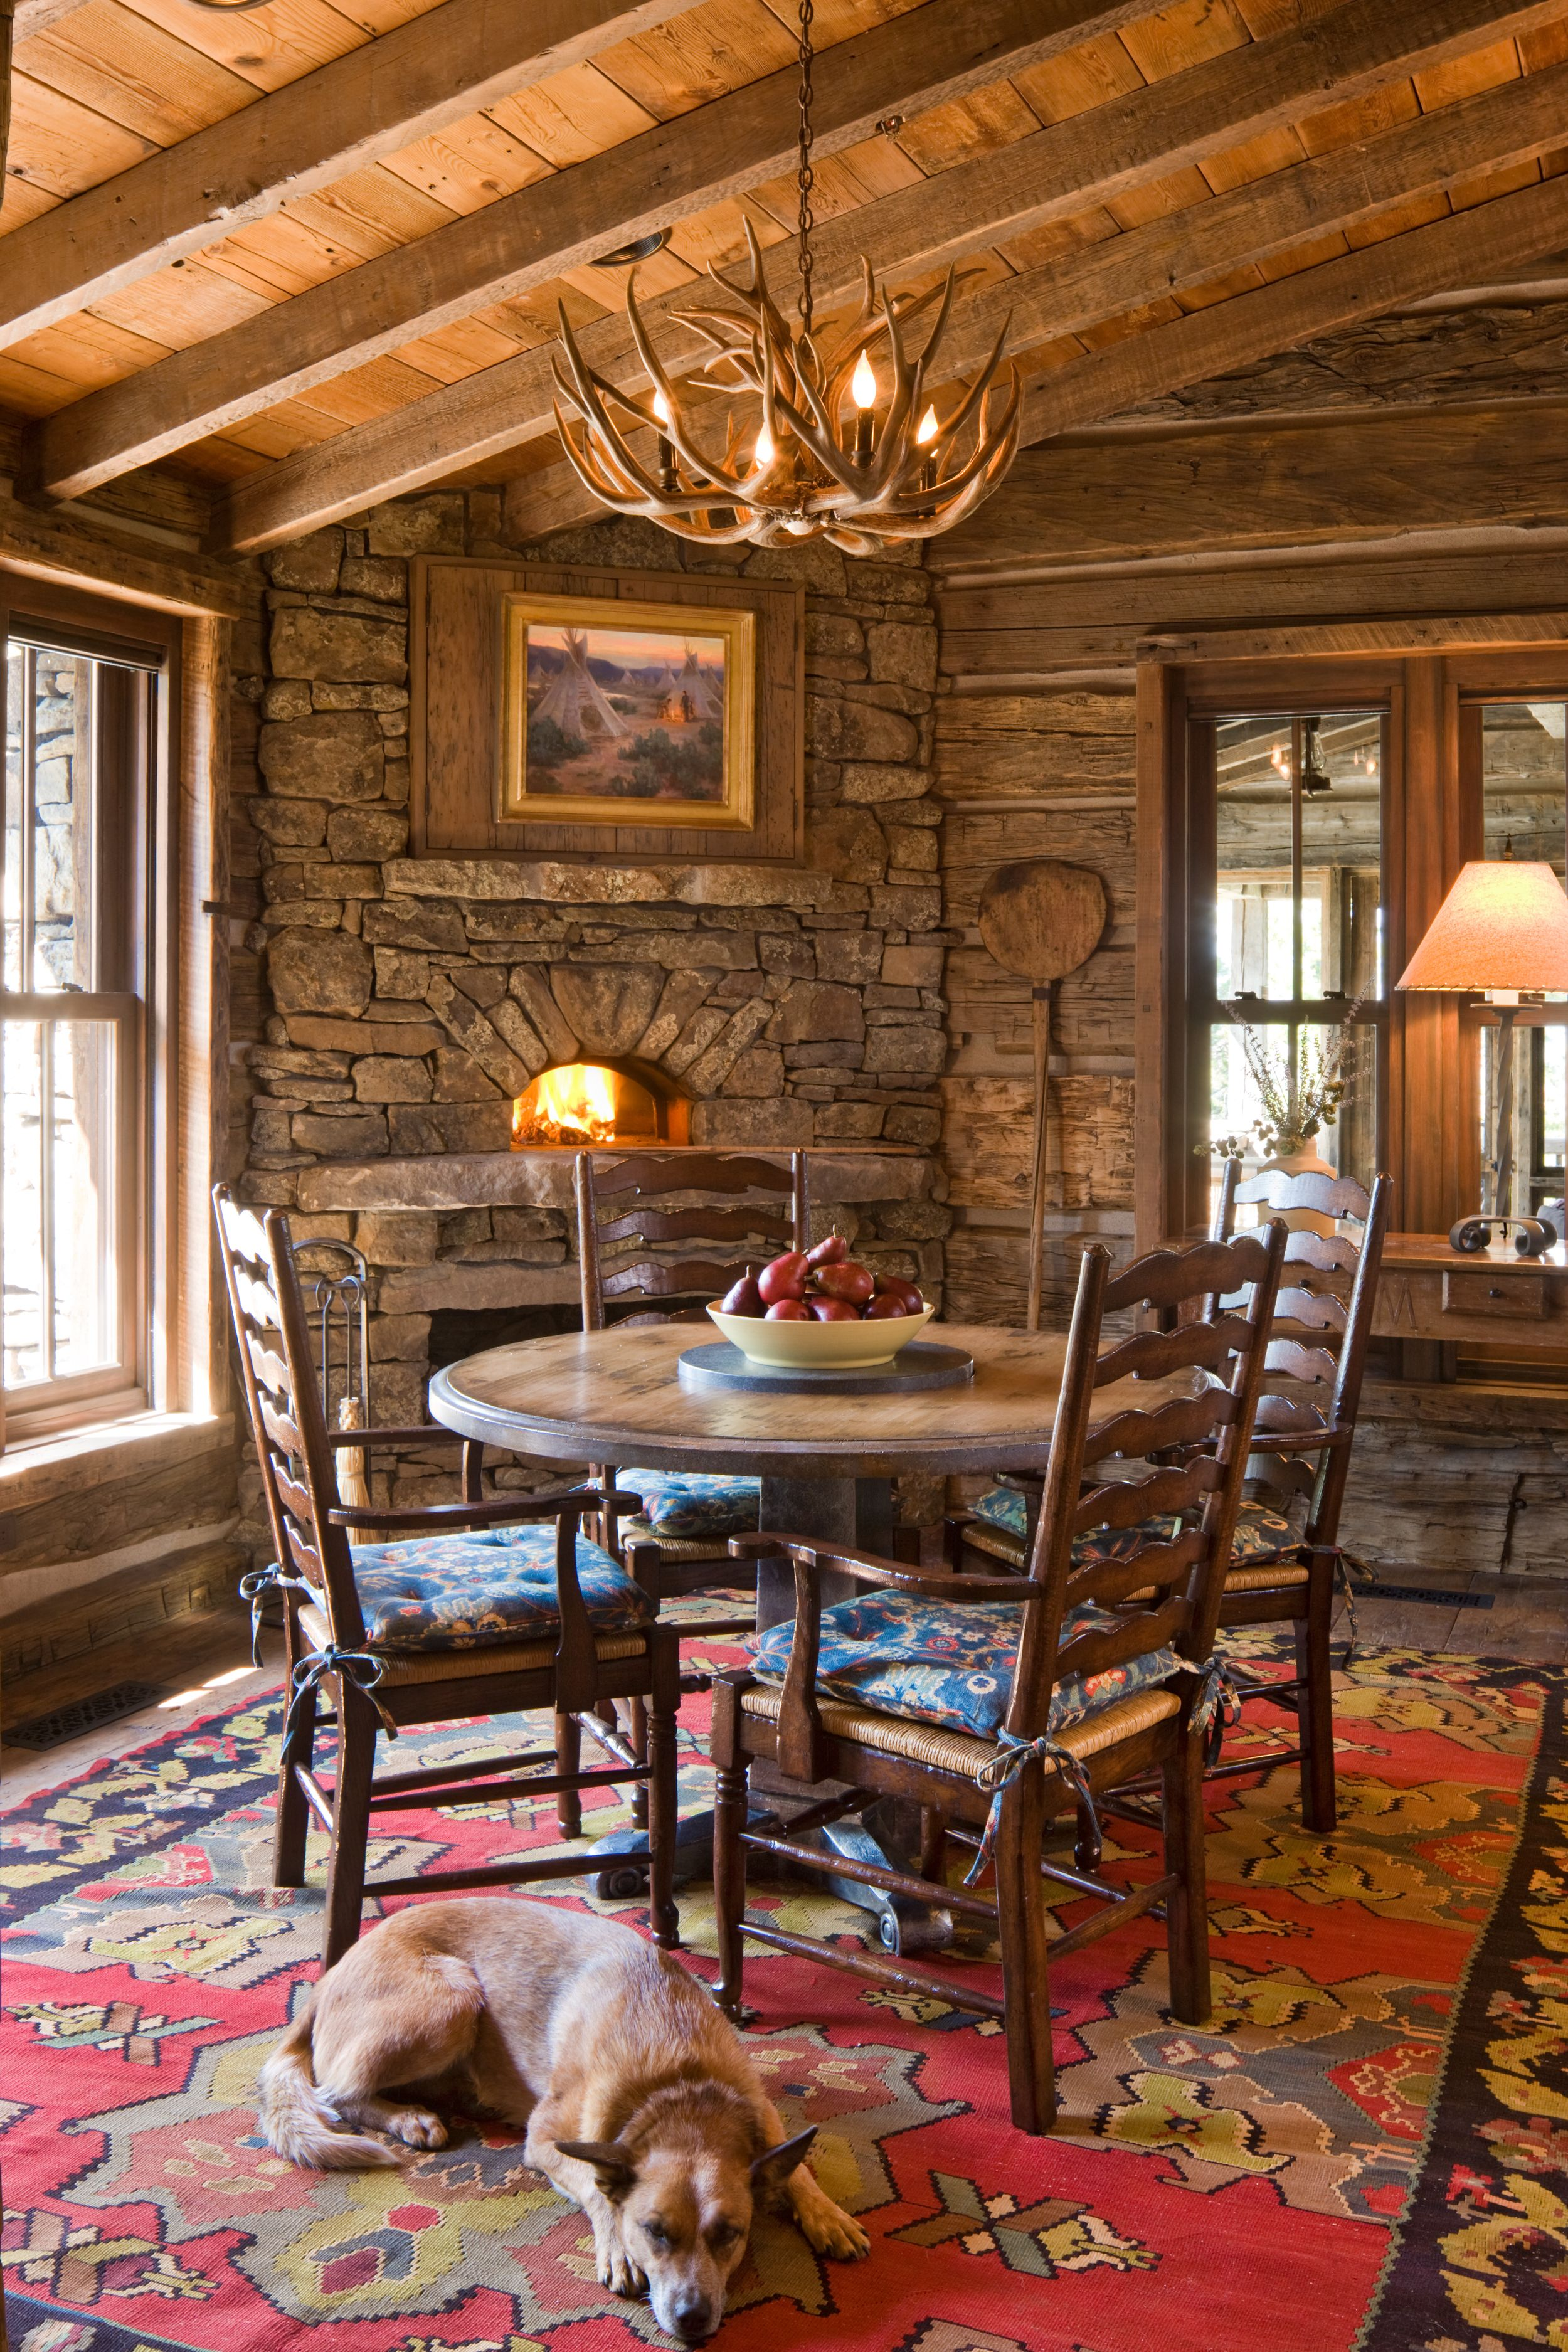 Wonderful Fireplaces In The Dining Room For Cozy And Warm: GREAT POINT LODGE With Inspiring Vistas And 160 Acres Of